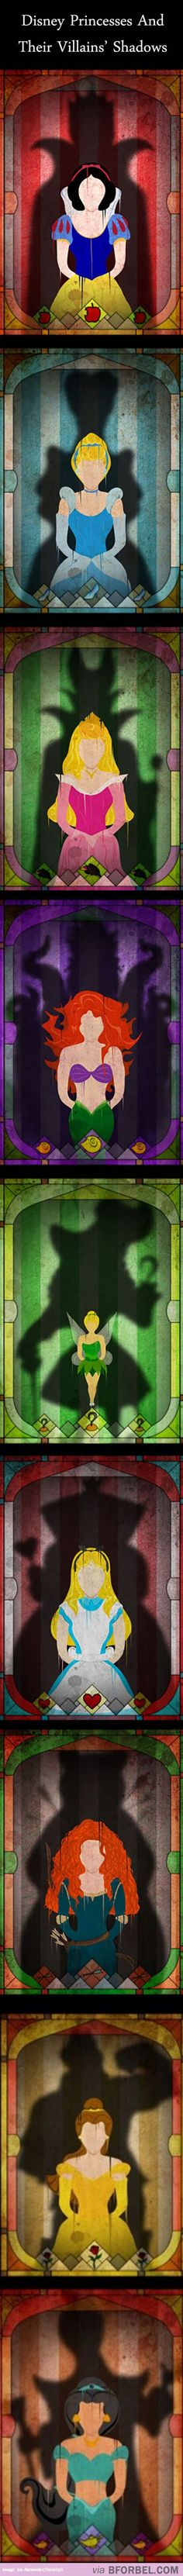 Disney princesses in their villains silhouettes